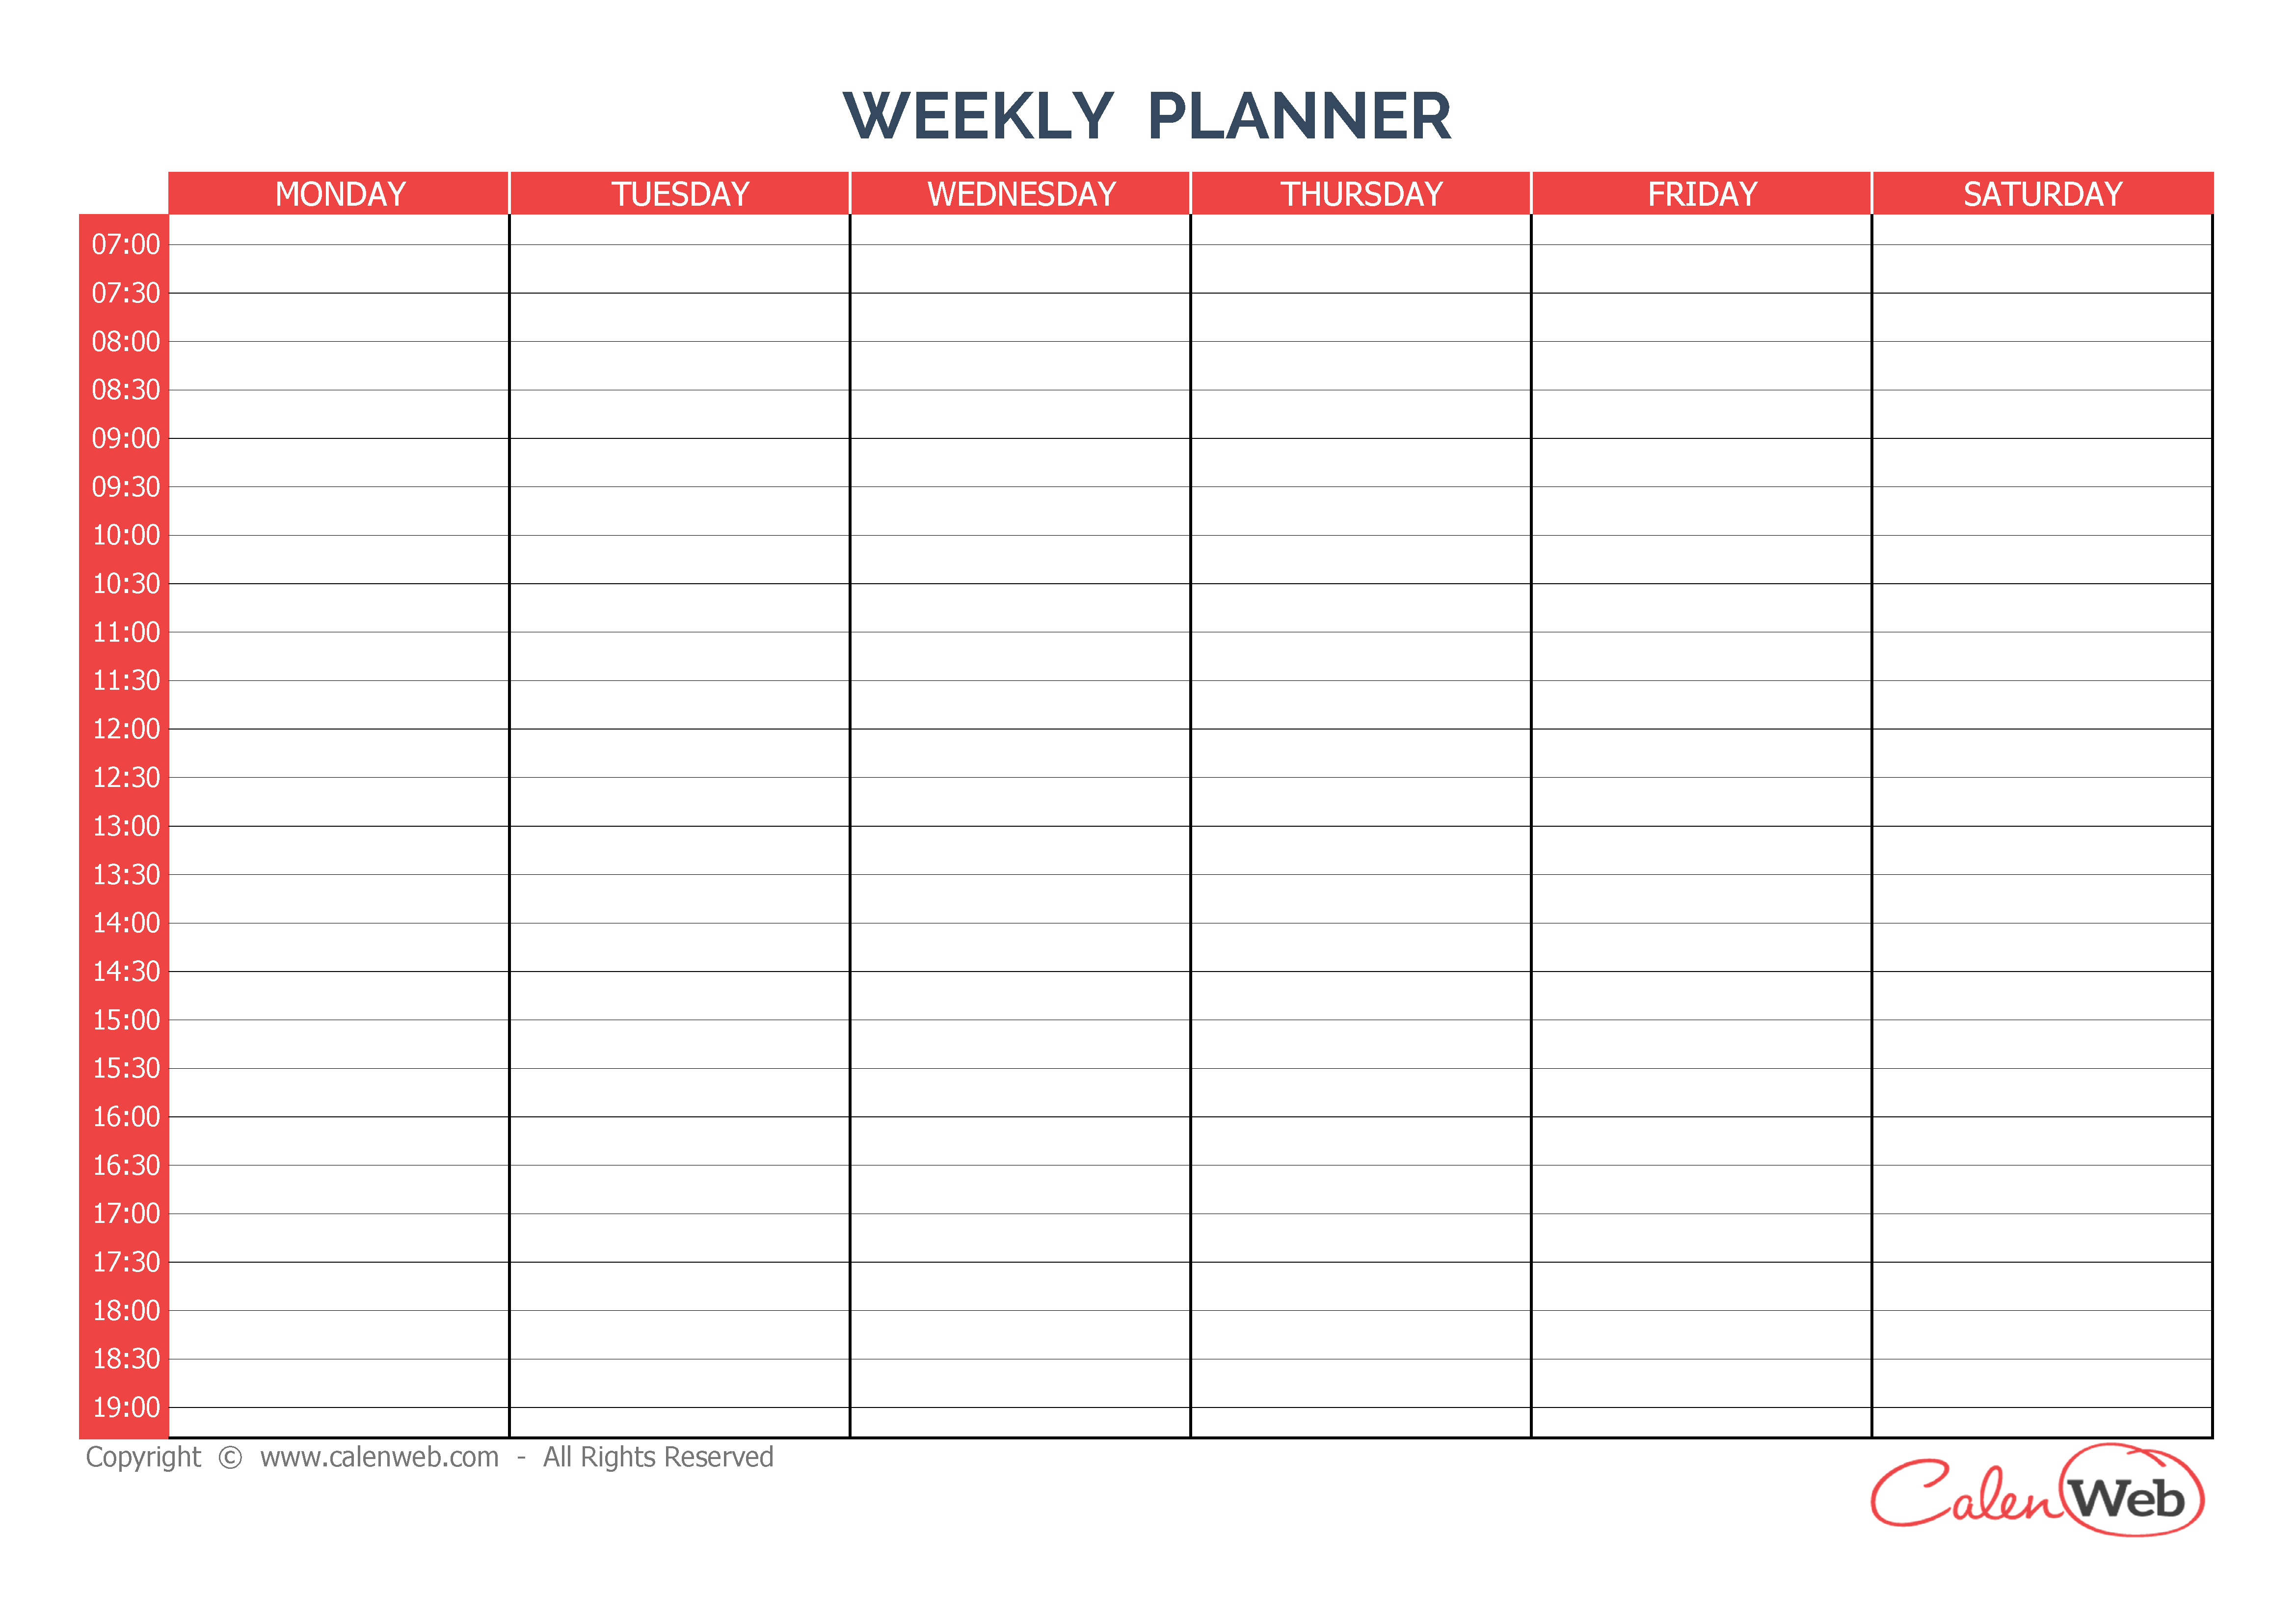 Weekly Planner 6 Days A Week Of 6 Days - Calenweb intended for 7 Day Weekly Planner Template